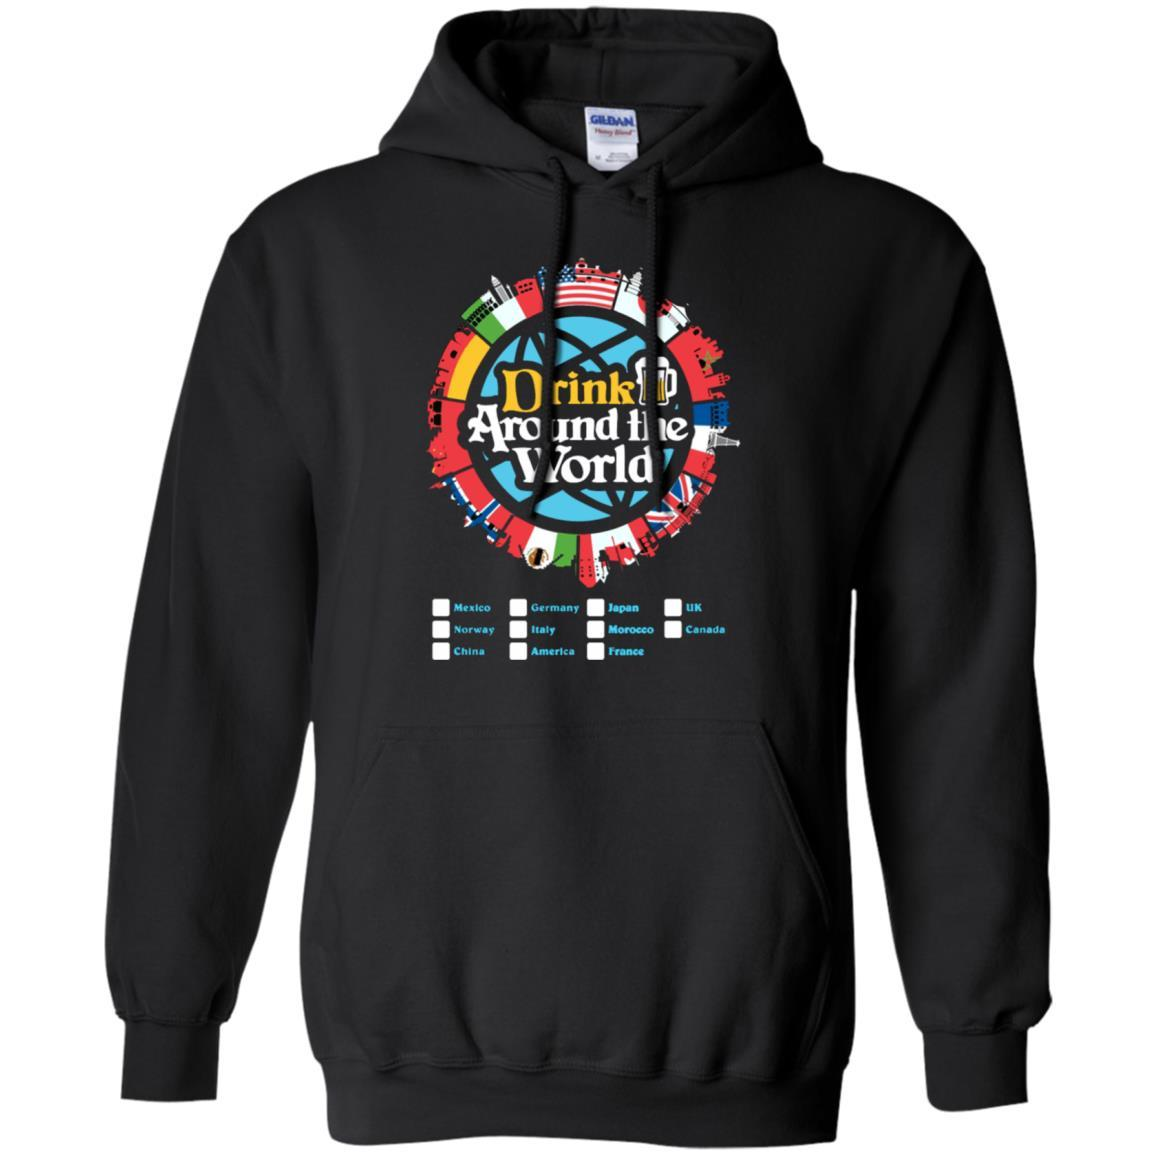 Drink Around the World - Pullover Hoodie Black / 5XL